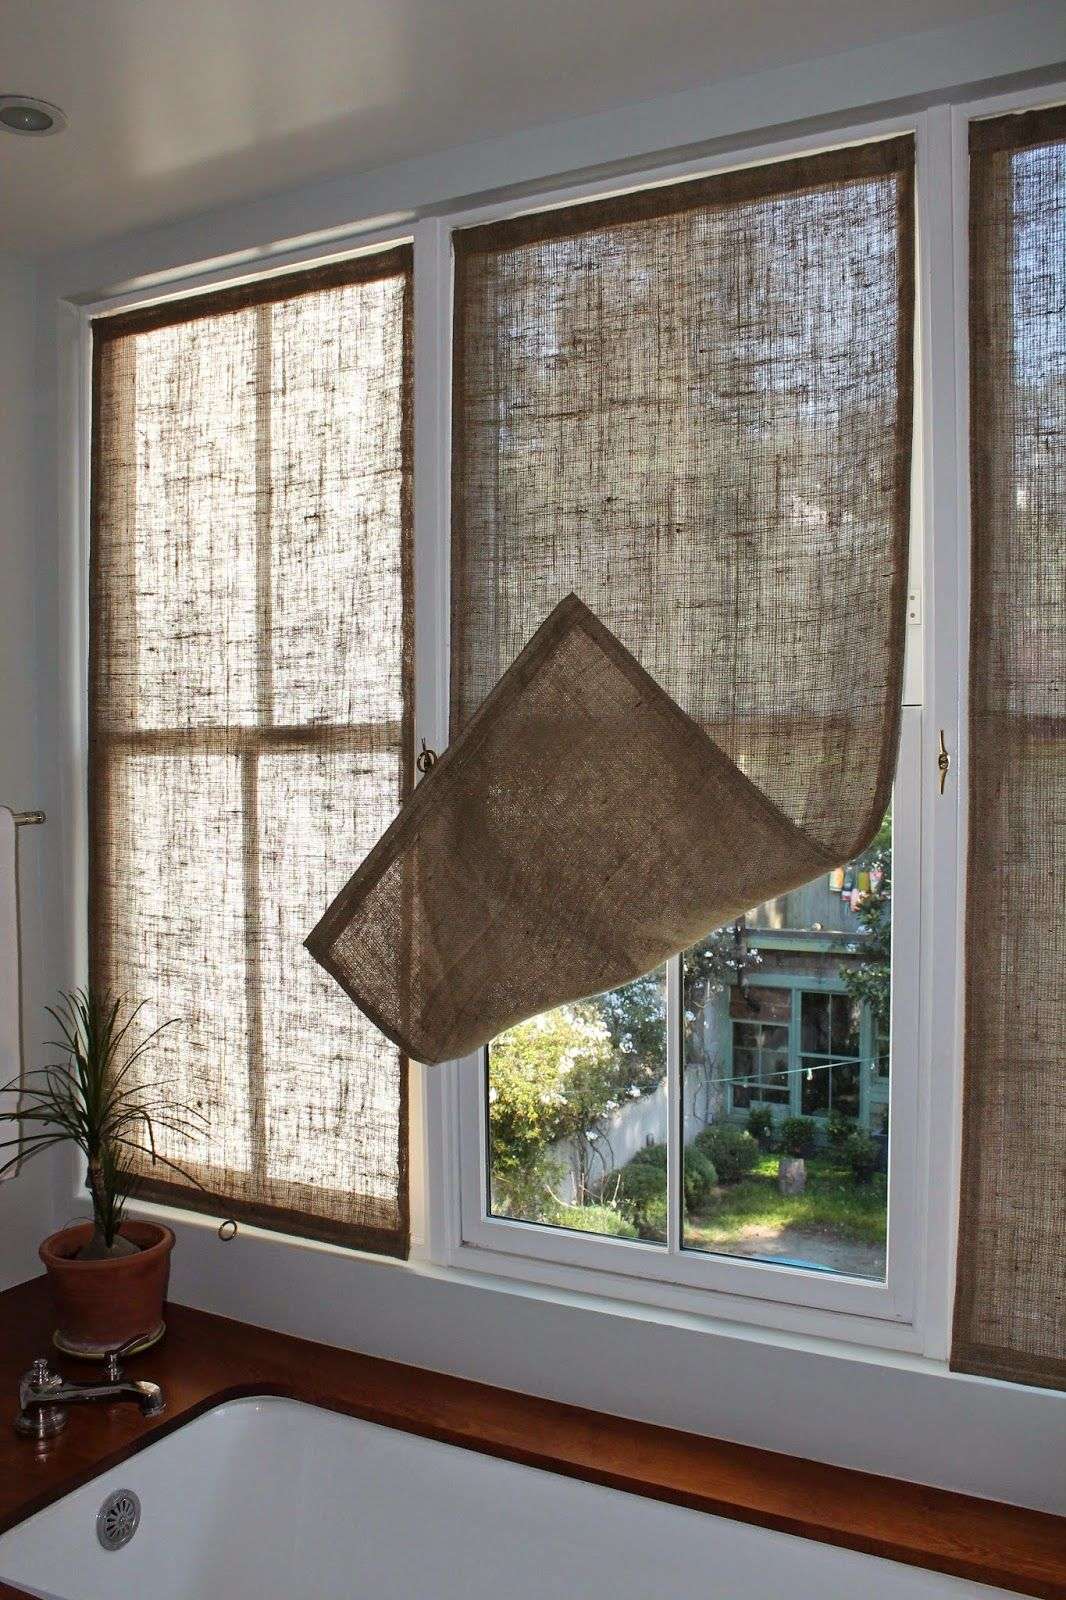 Last Week I Made Some New Burlap Window Coverings For The Master Bathroom I Kitchen Window Coverings Farmhouse Window Treatments Window Coverings Diy